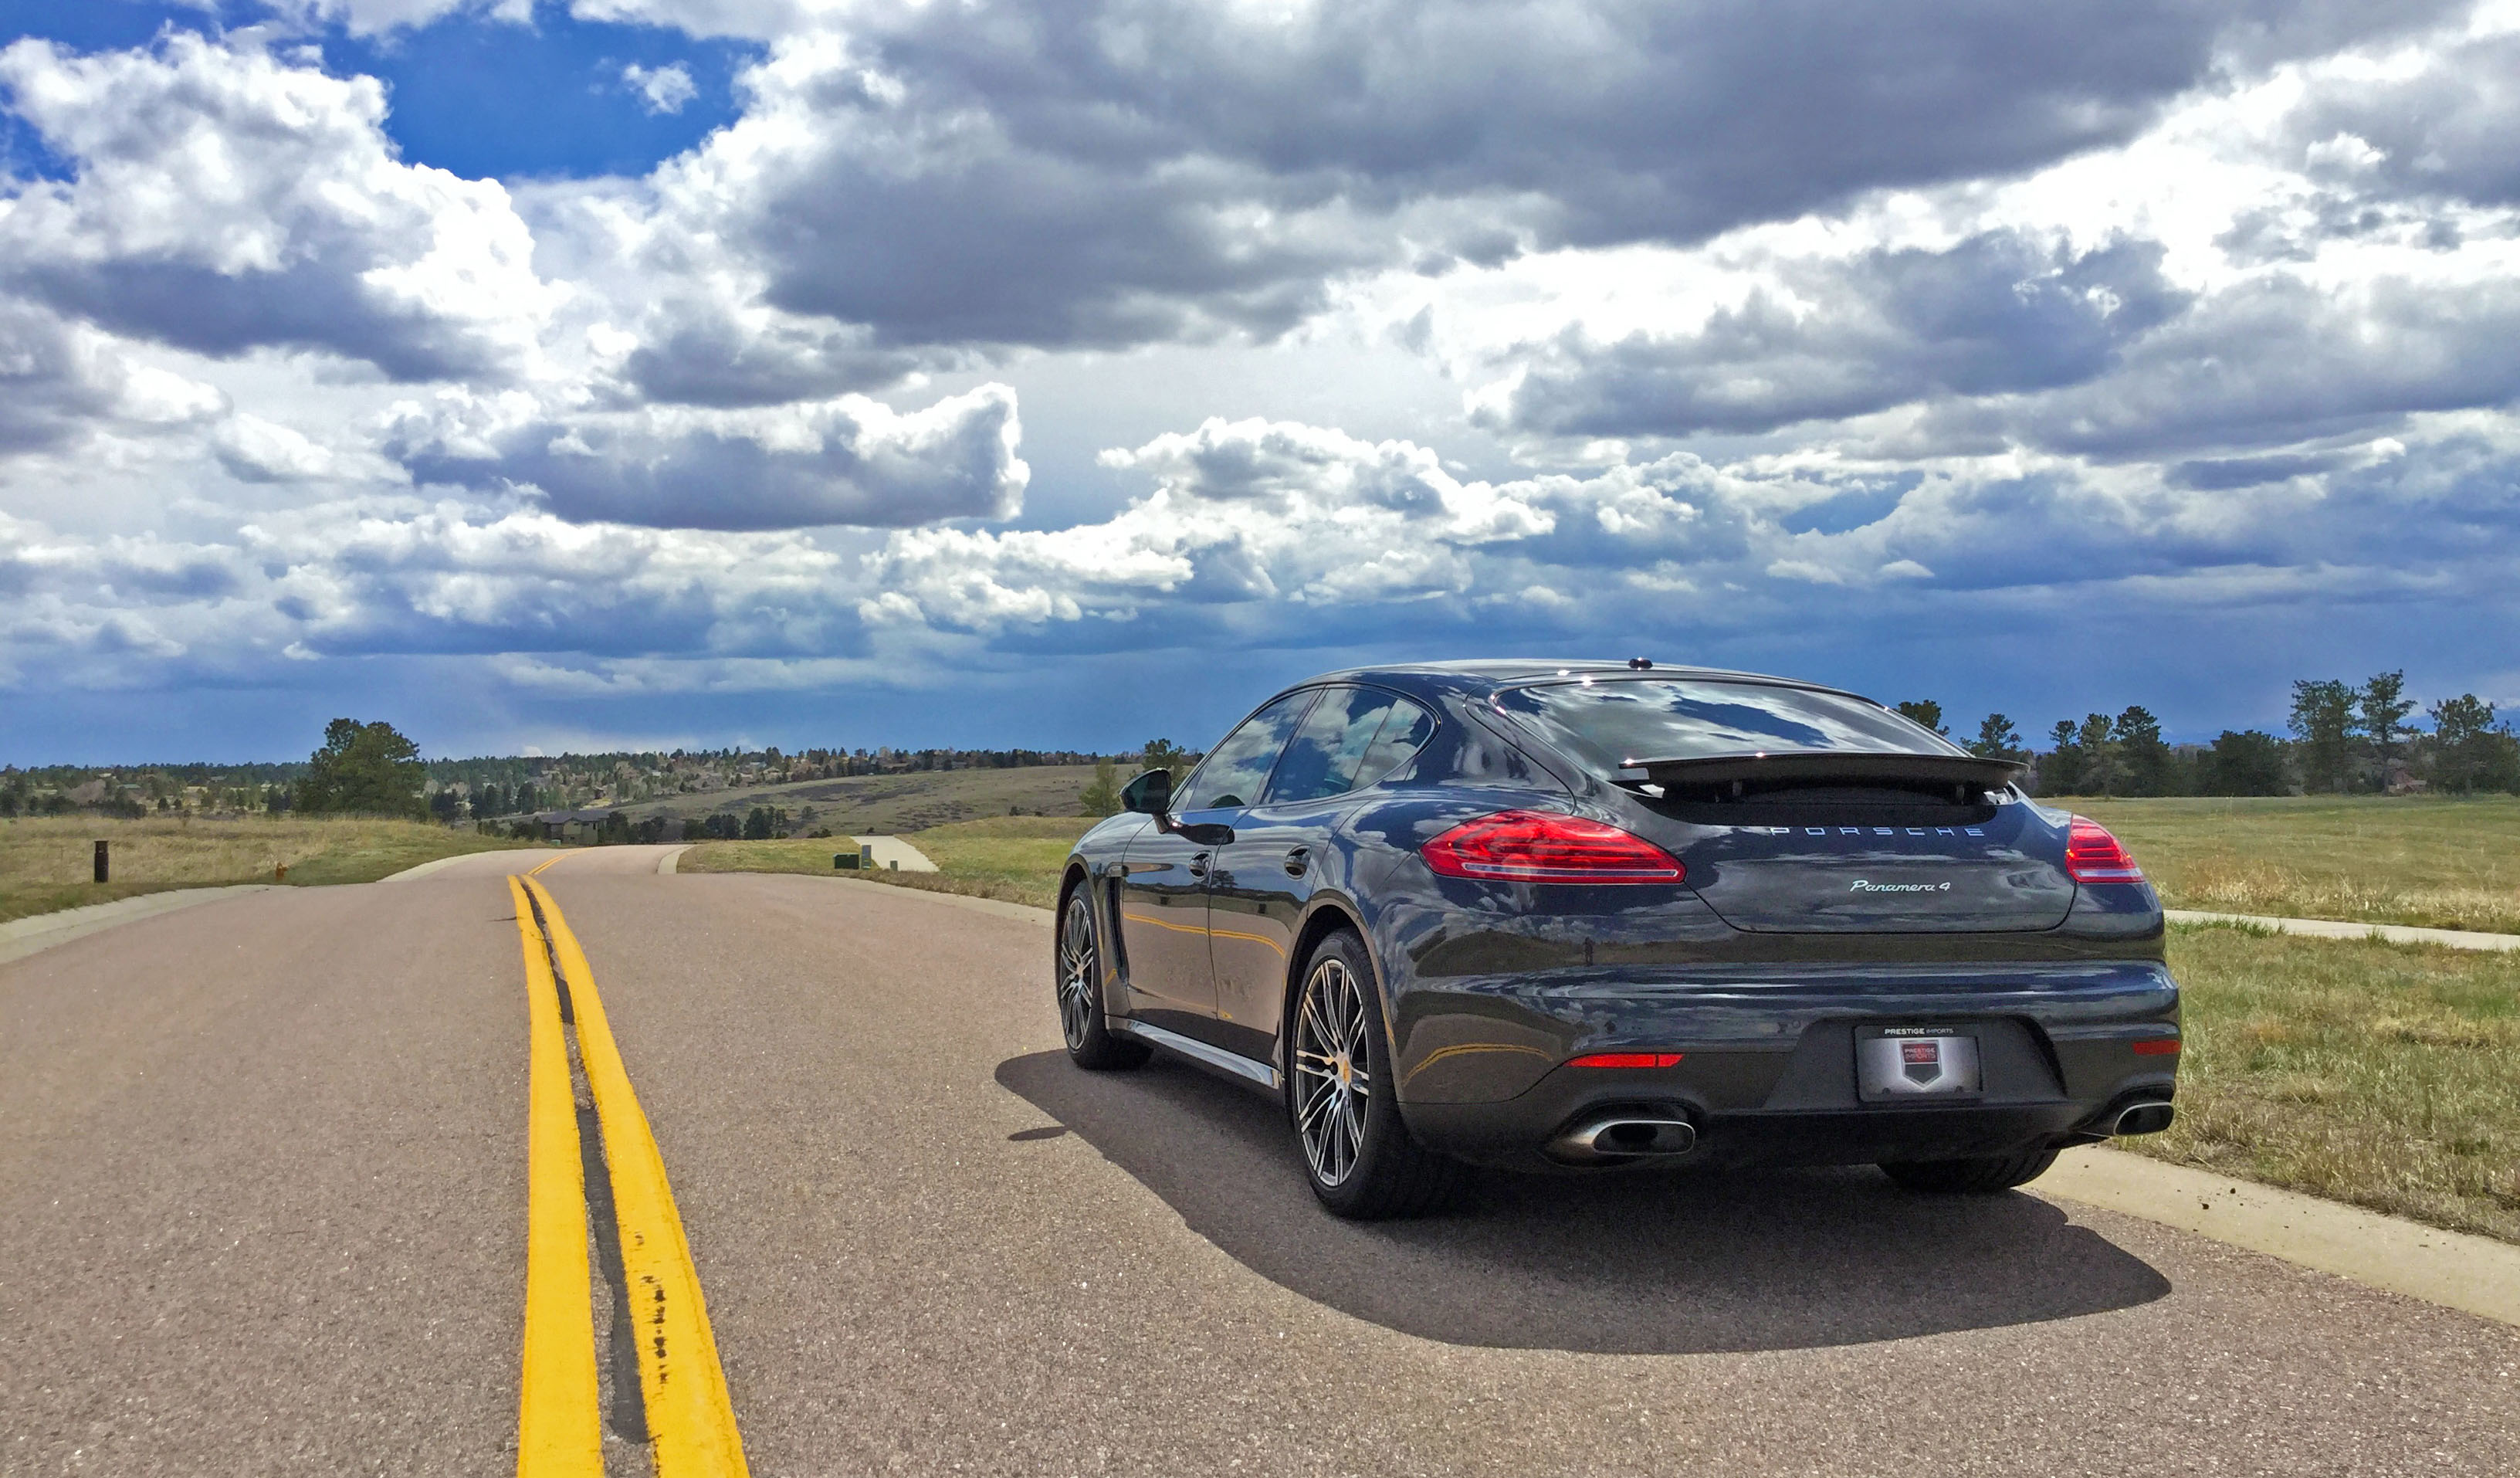 2016 Porsche Panamera 4 and rainstorm in the distance